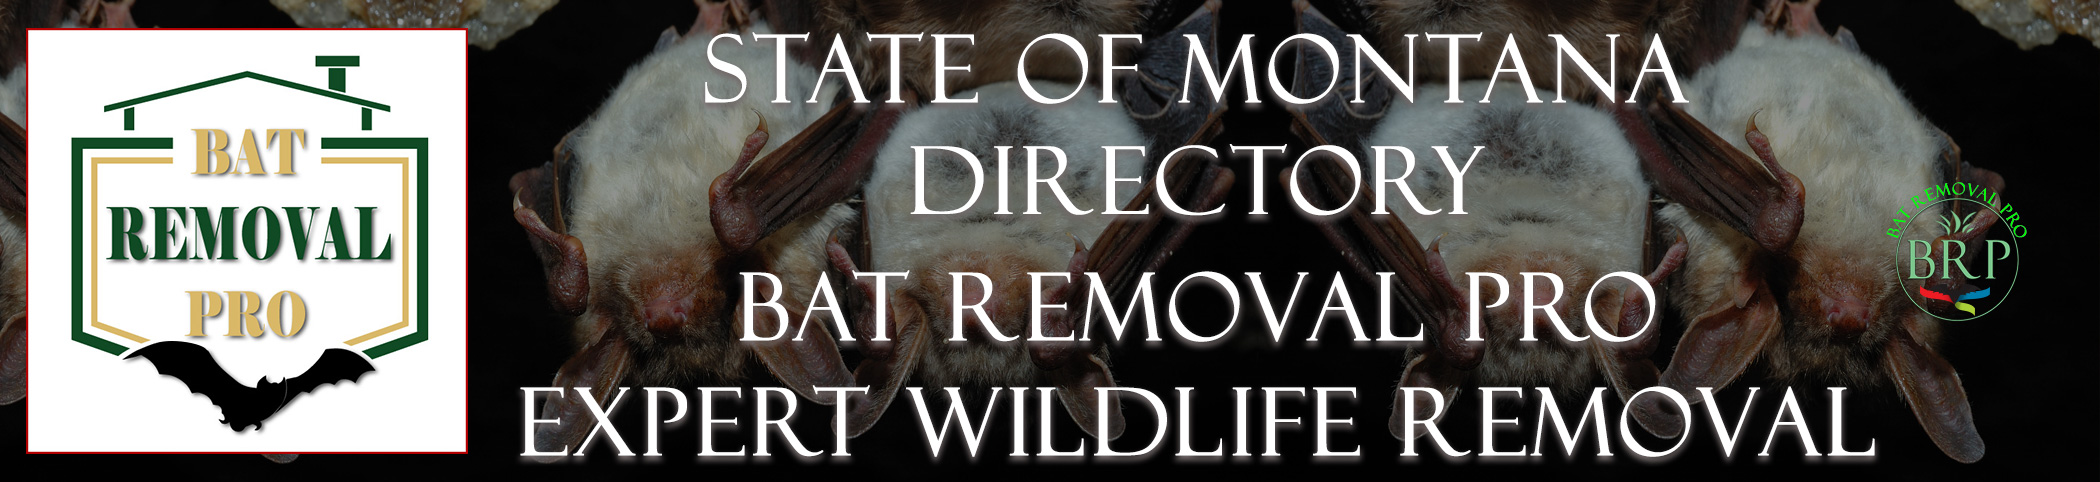 MONTANA-bat-removal-at-bat-removal-pro-header-image